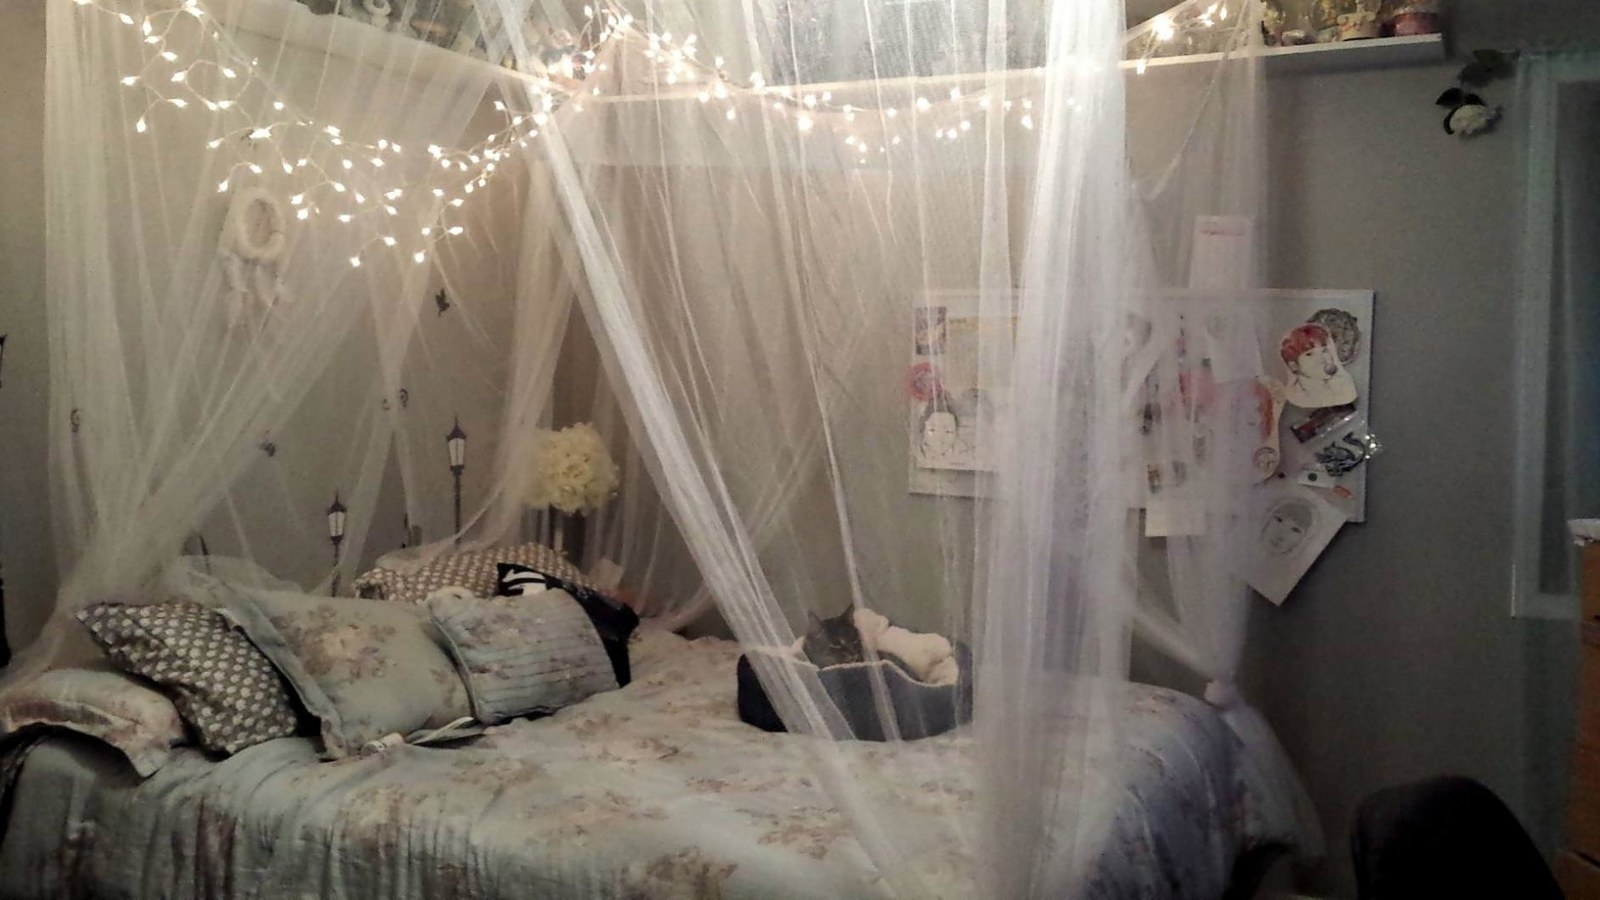 the canopy over a bed against the wall